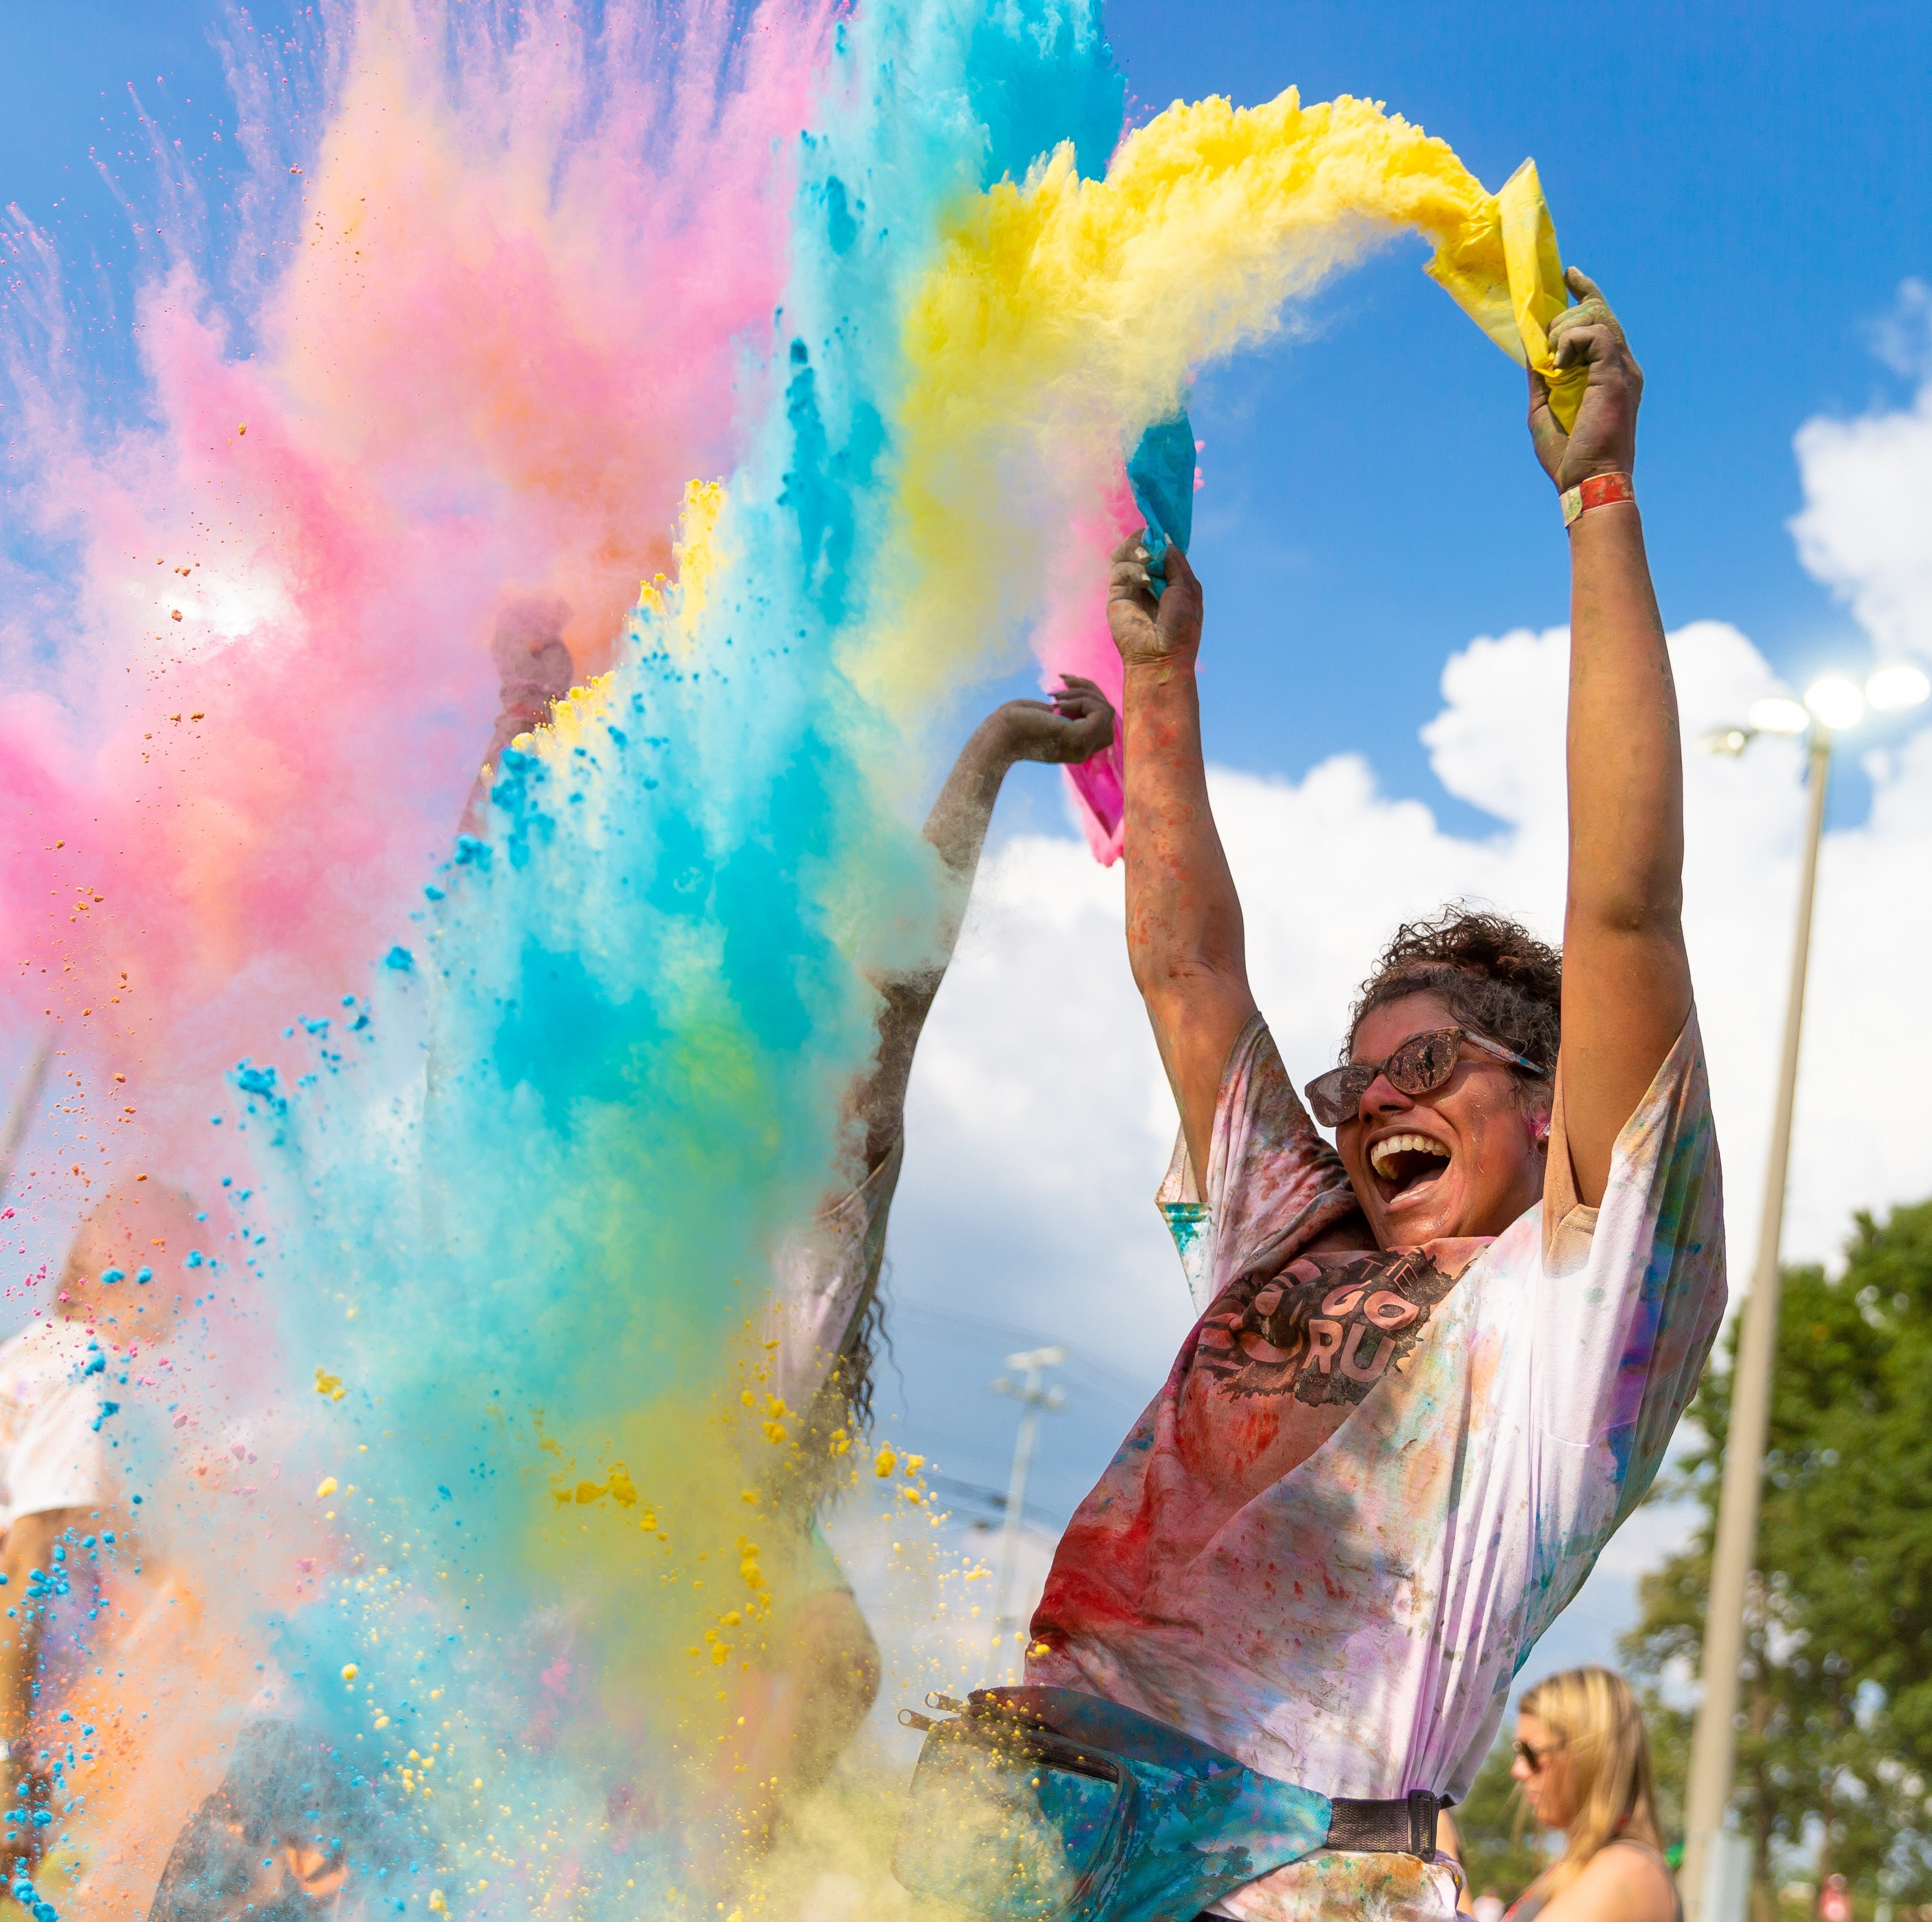 Color Fun Run coming up at Sandy Lee Watkins Park